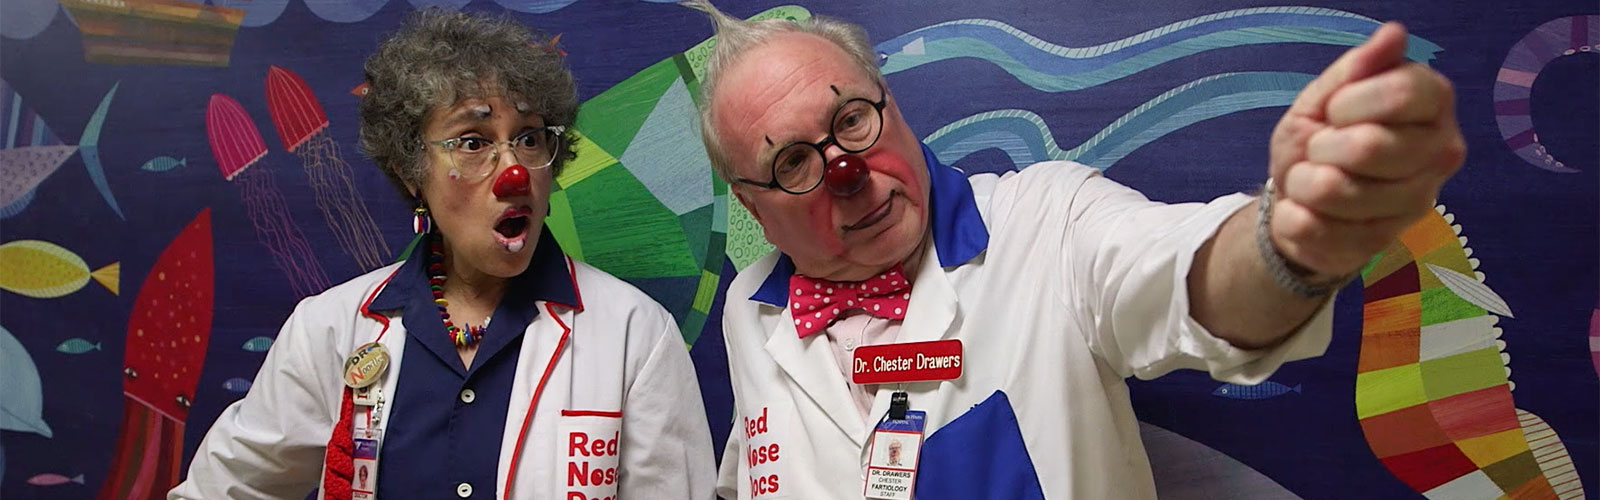 Healthy Humor Clowns at Yale-New Haven Children's Hospital